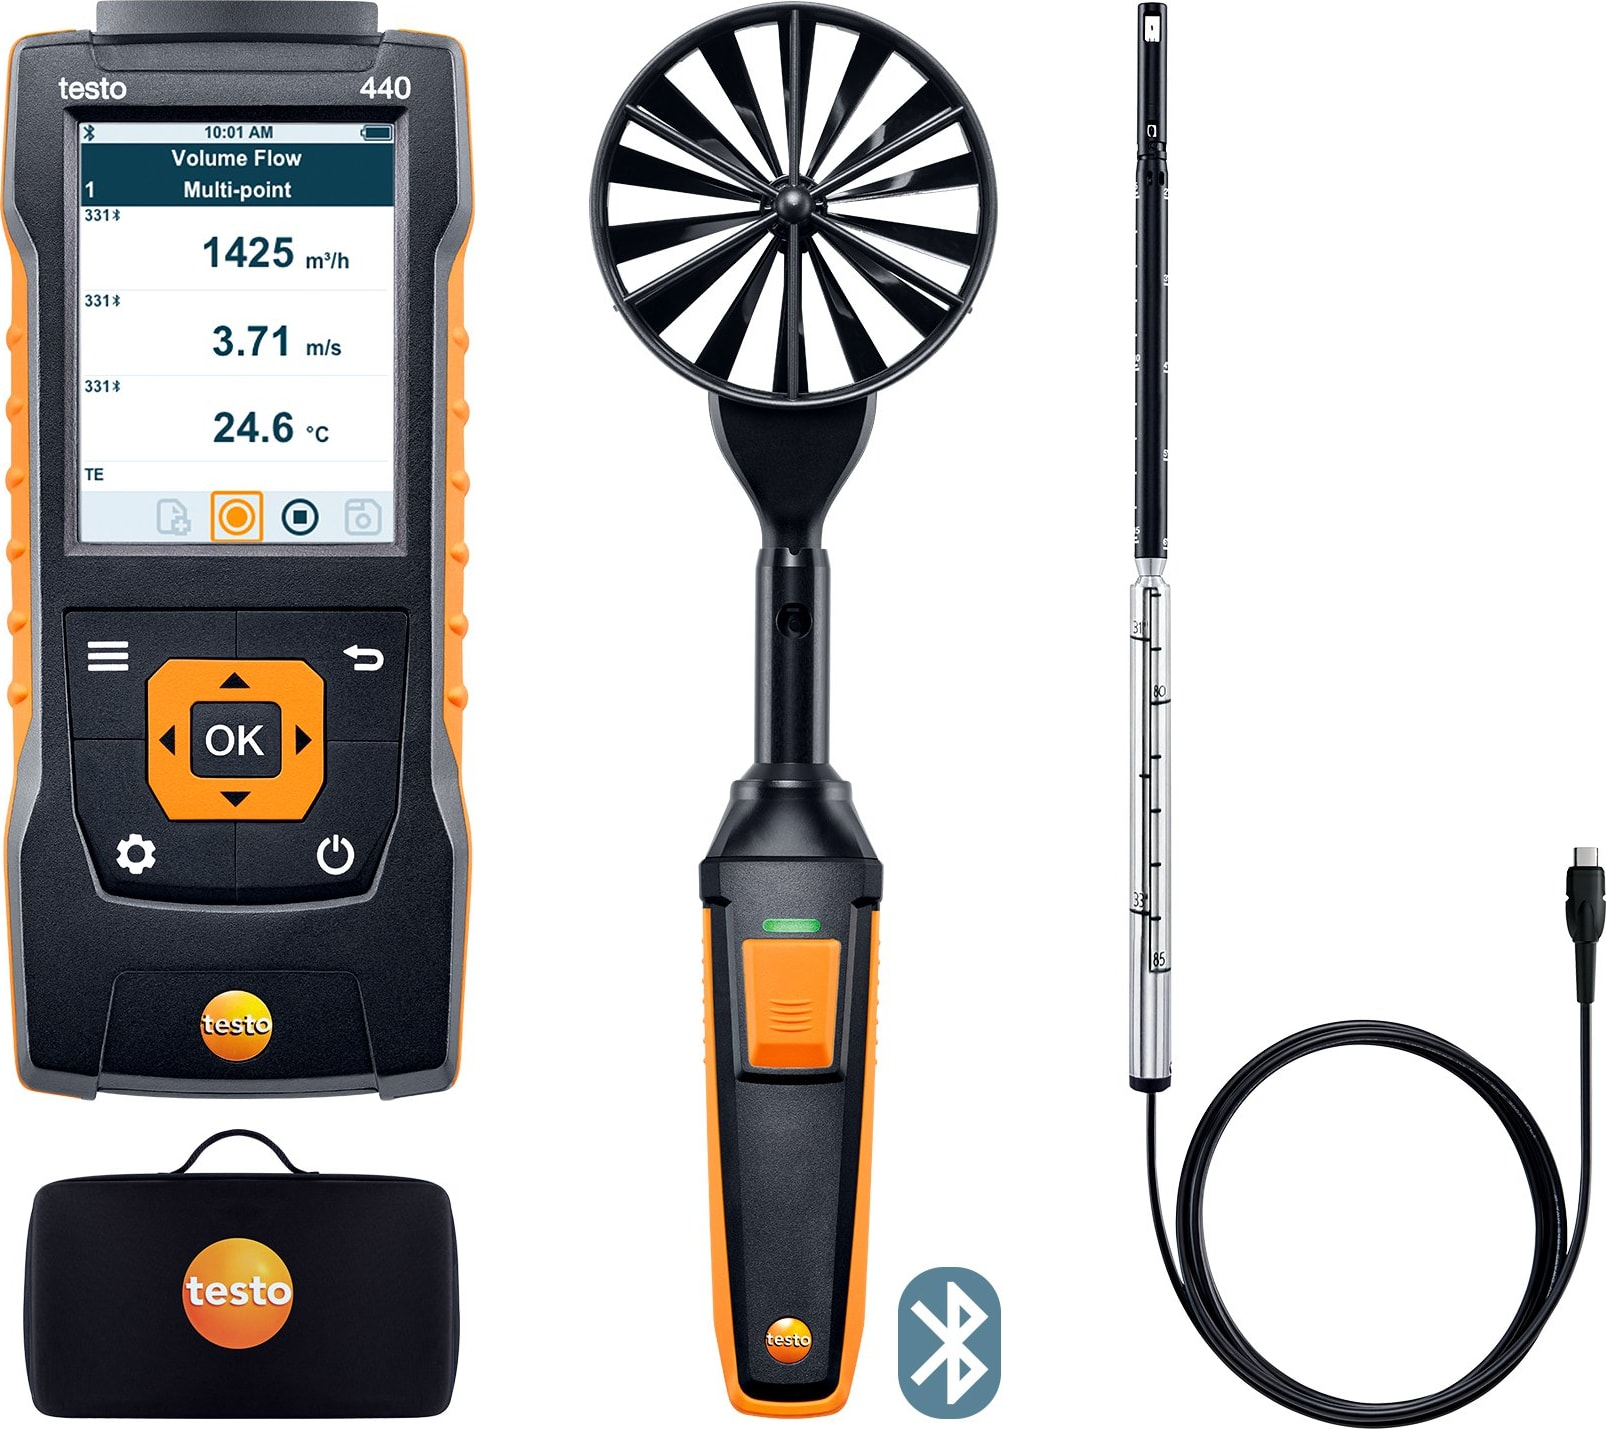 Testo 440 - Airflow Combo Kit 1 with Bluetooth, Part Number 0563 4406